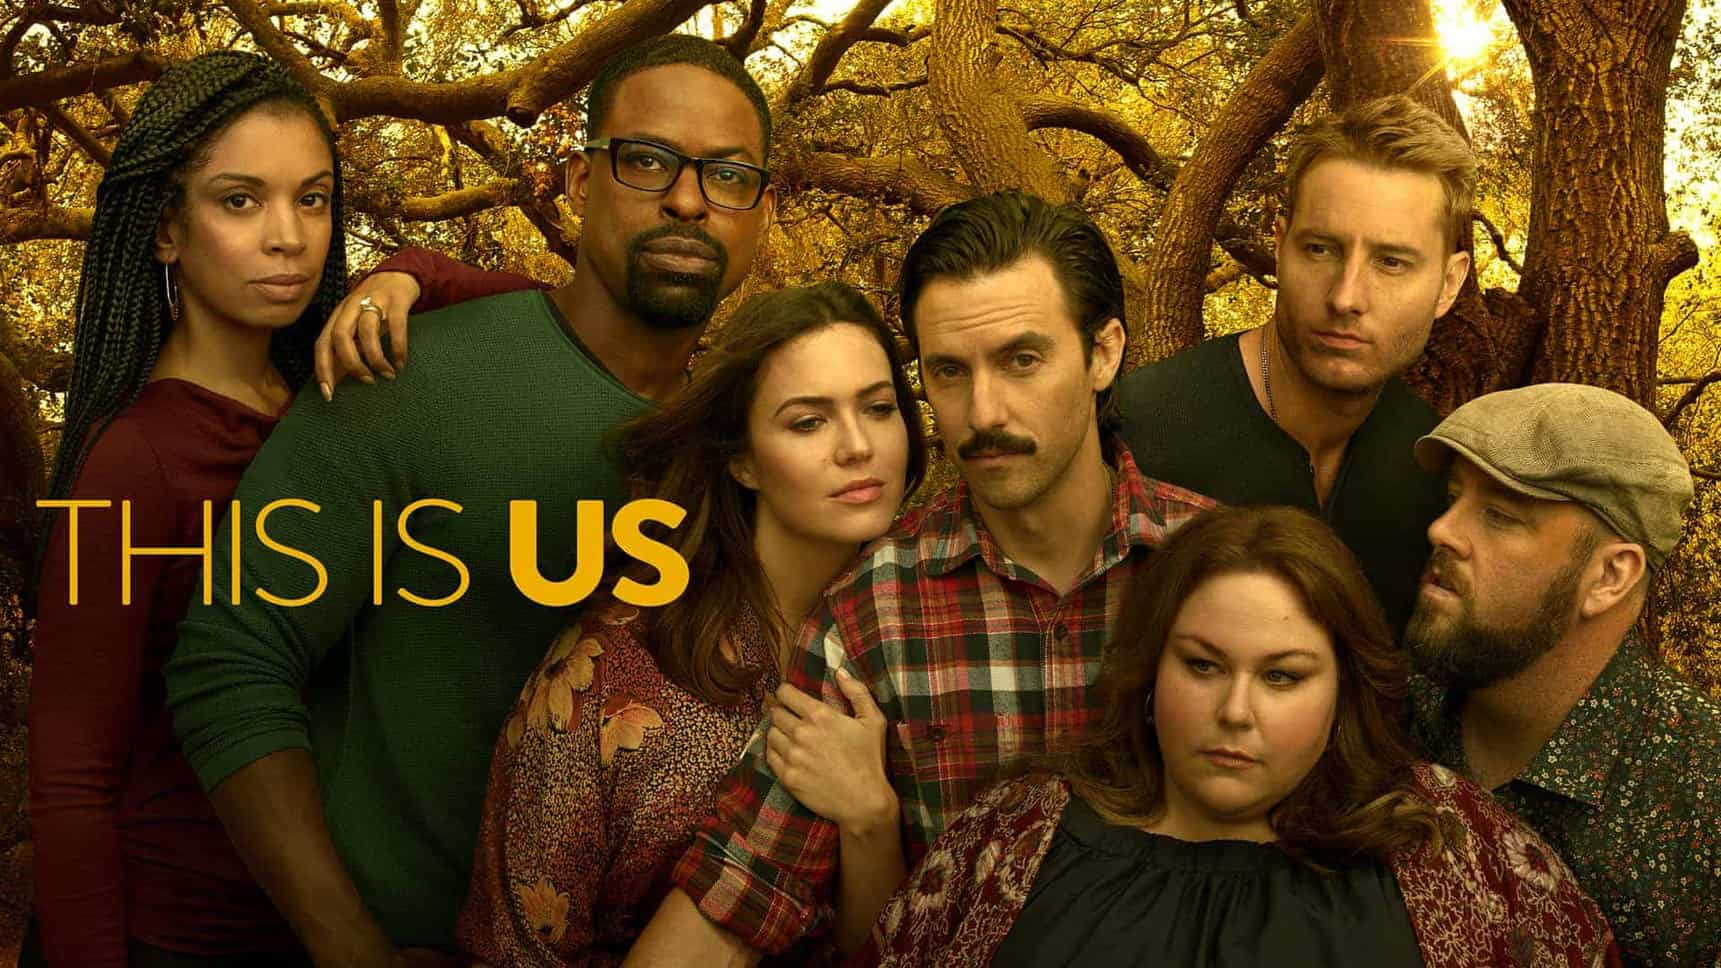 This Is Us Season 6 Release Date